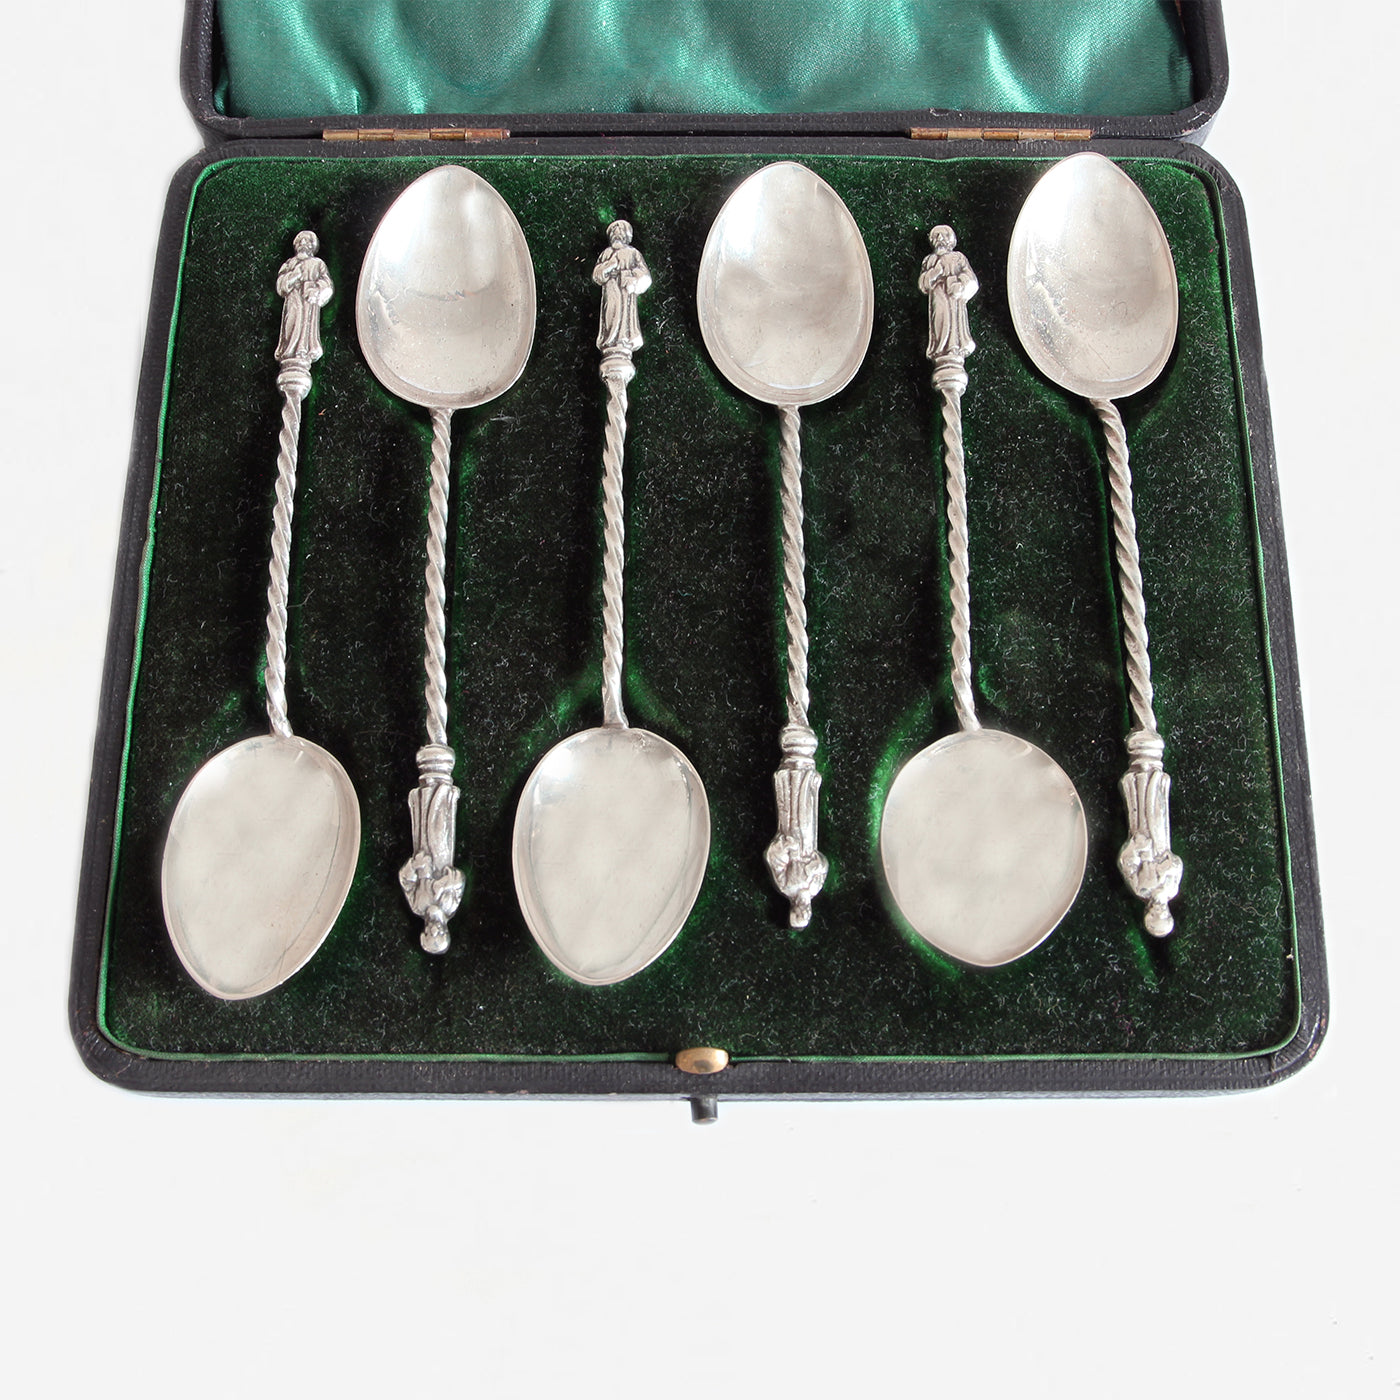 a set of secondhand silver apostle spoons in a green box dated 1901